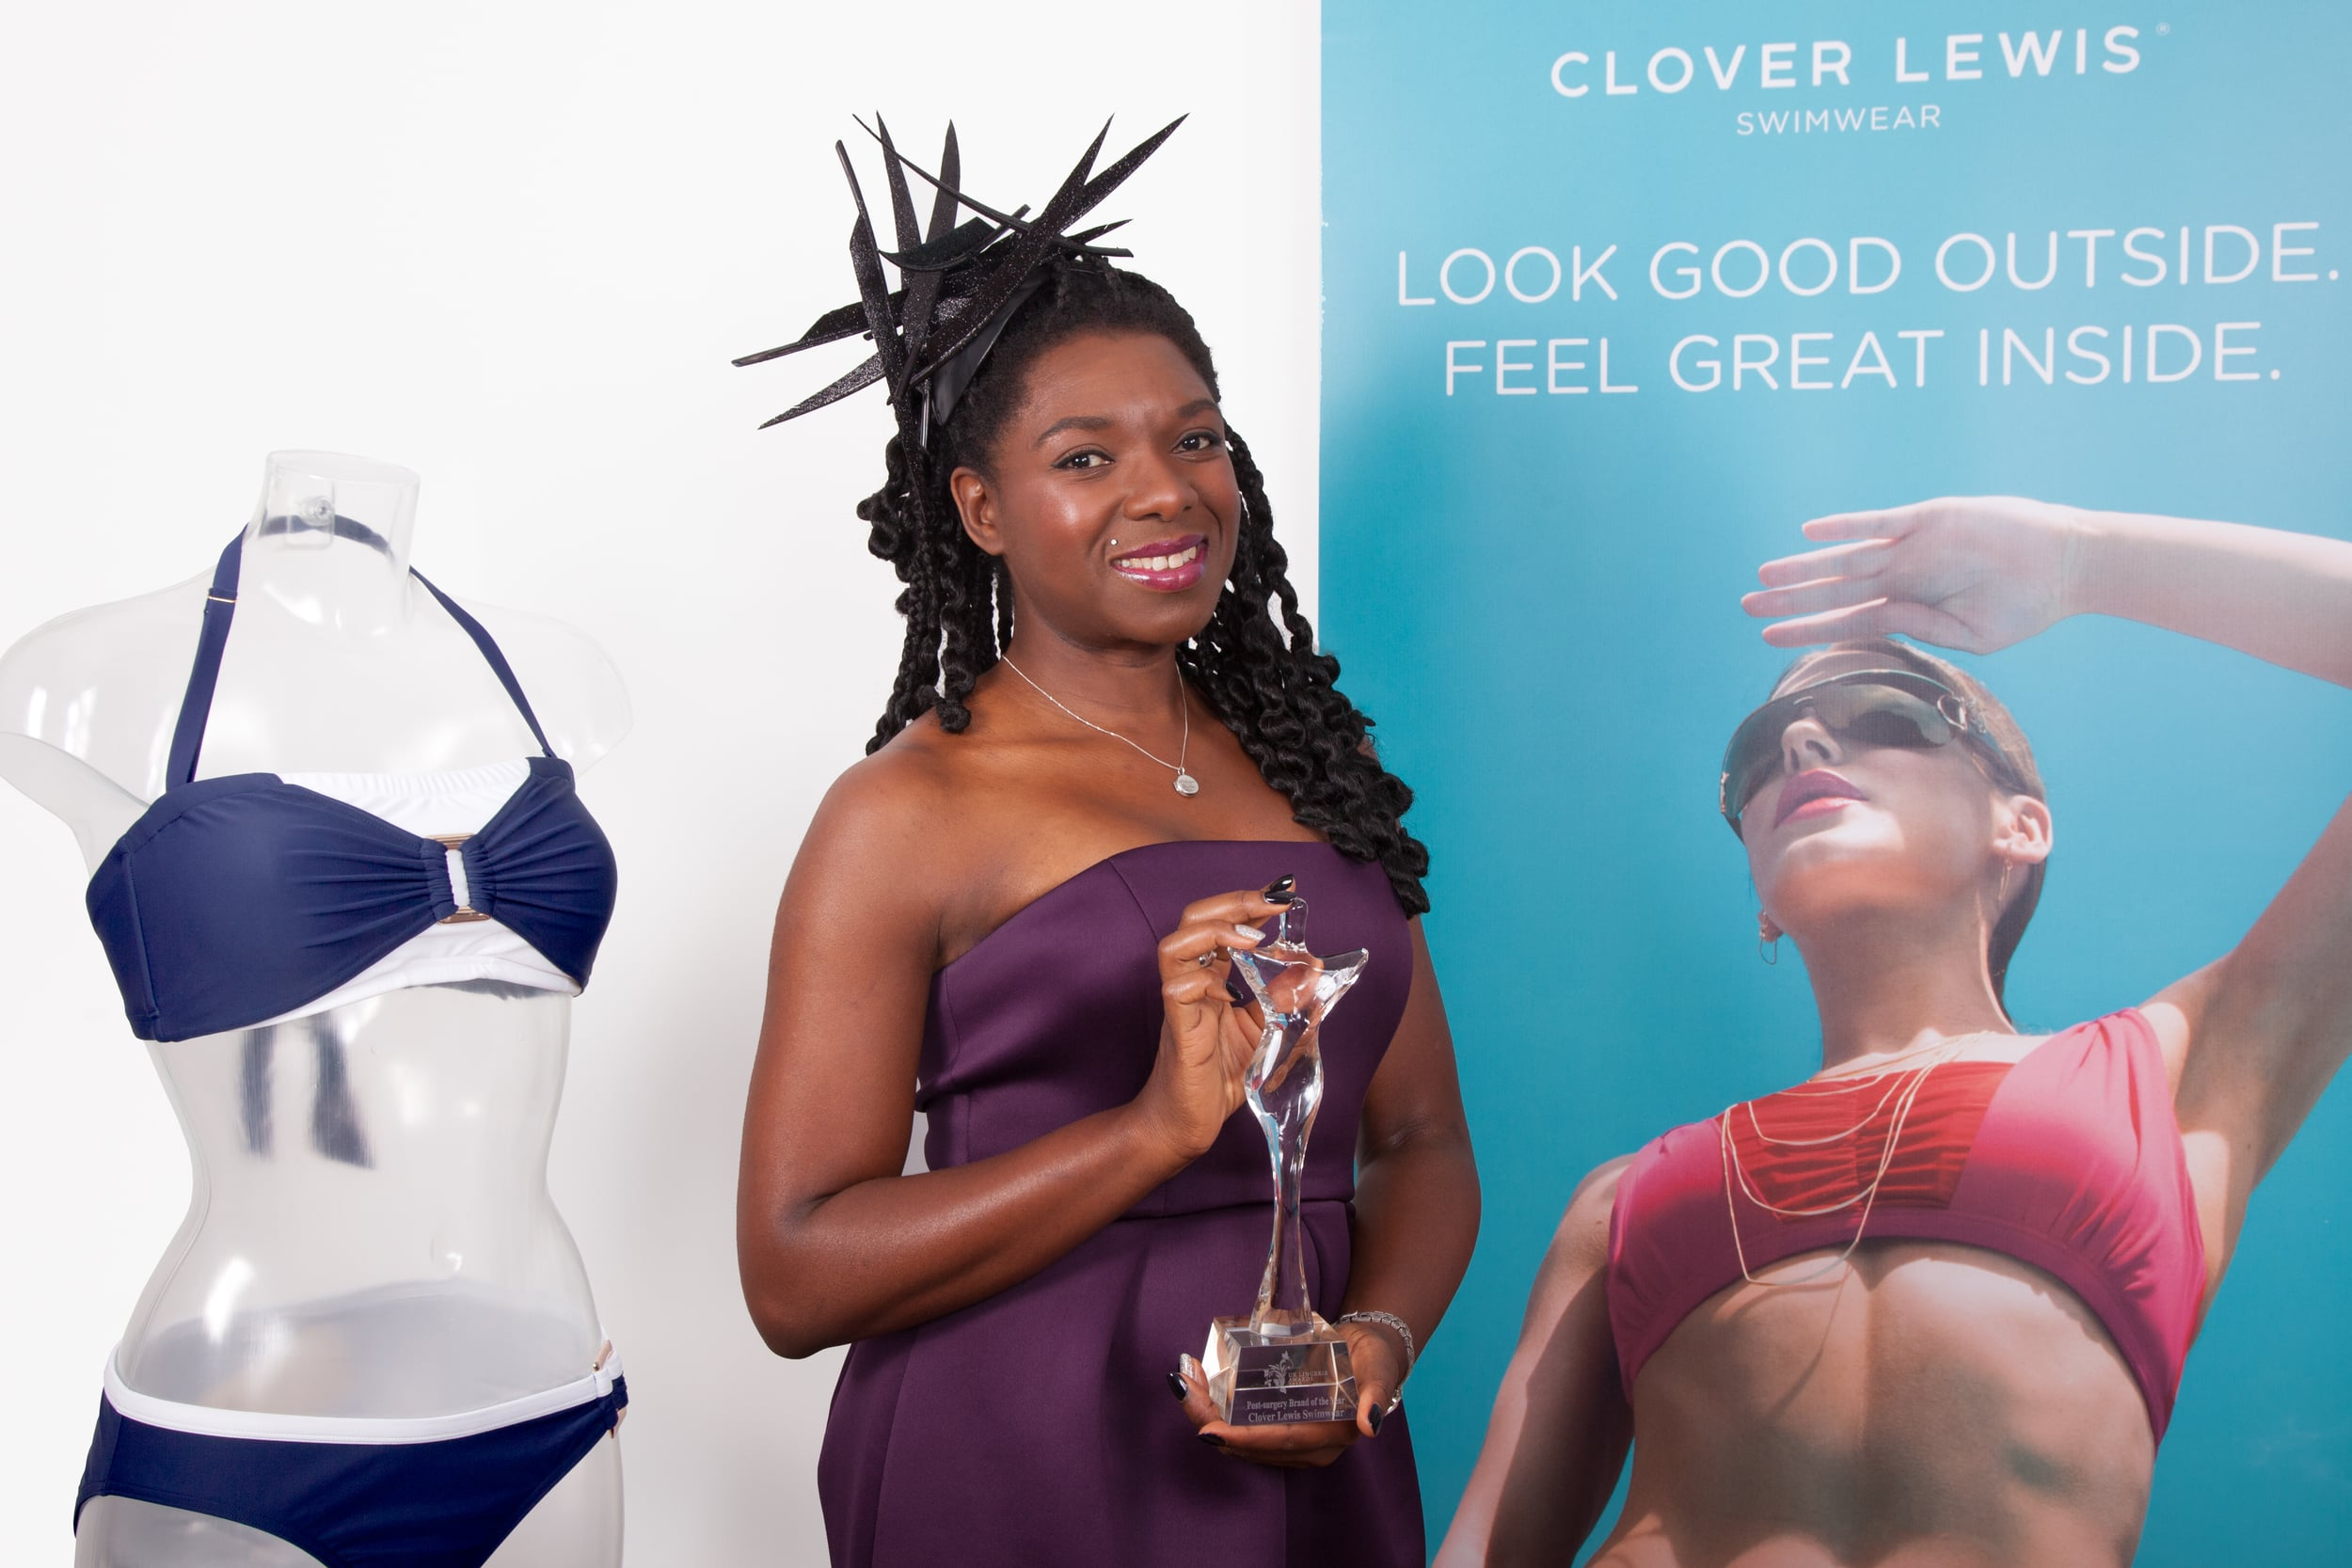 Post Surgery brand of the year award - Clover Lewis